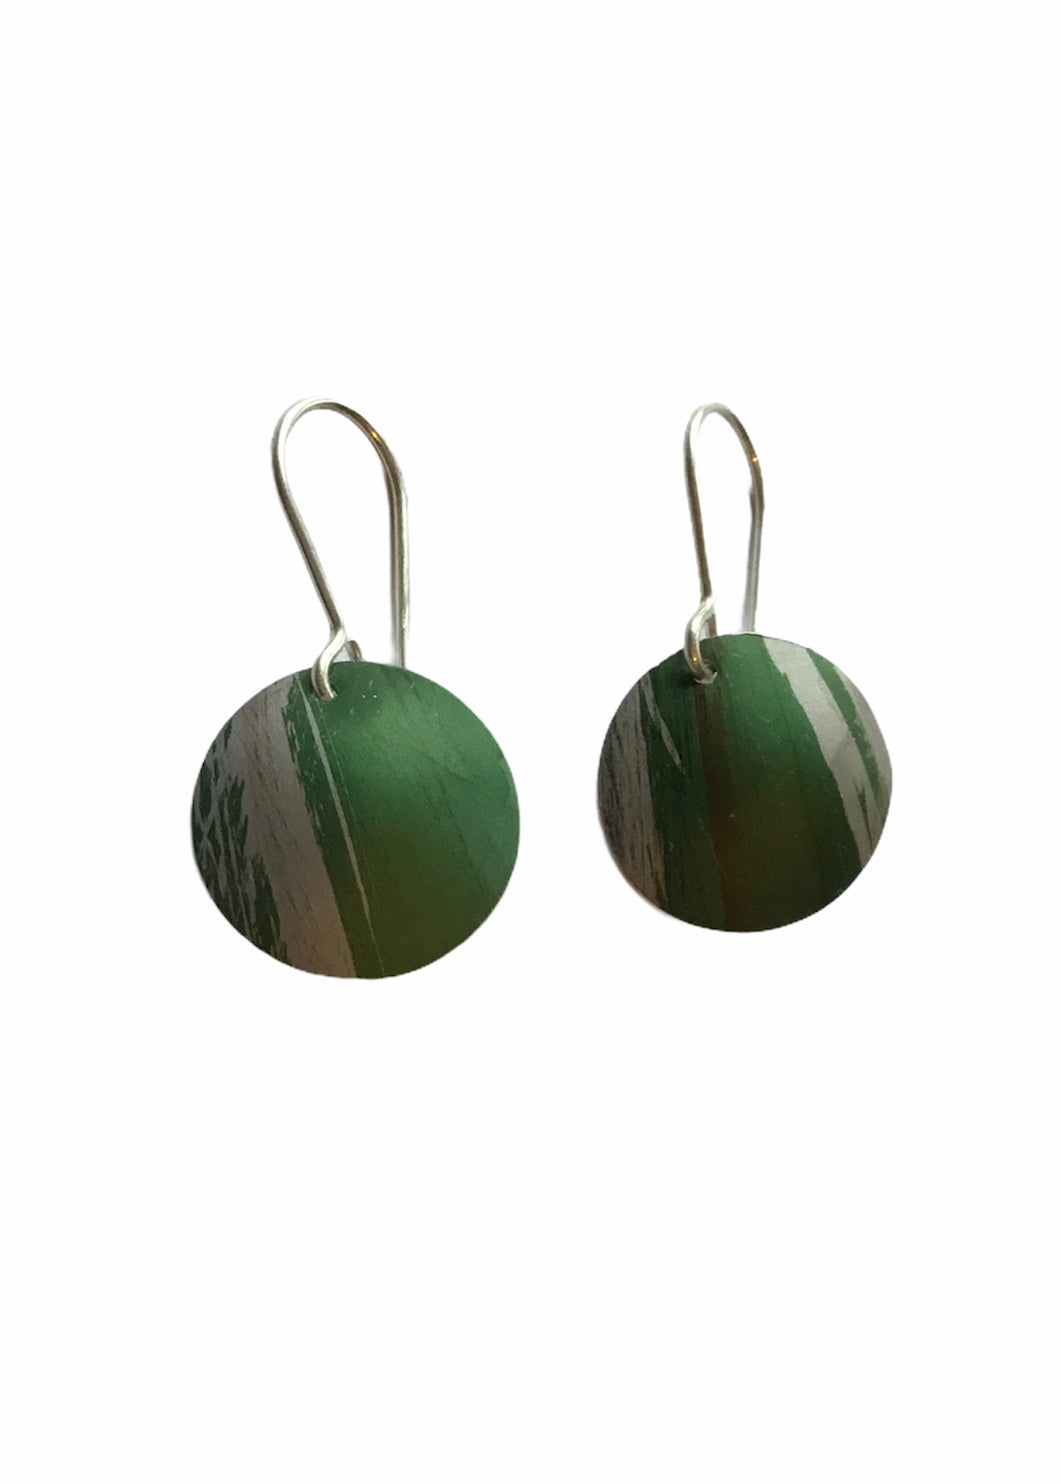 Rachel Stowe - Handprinted Disk Earrings in Green